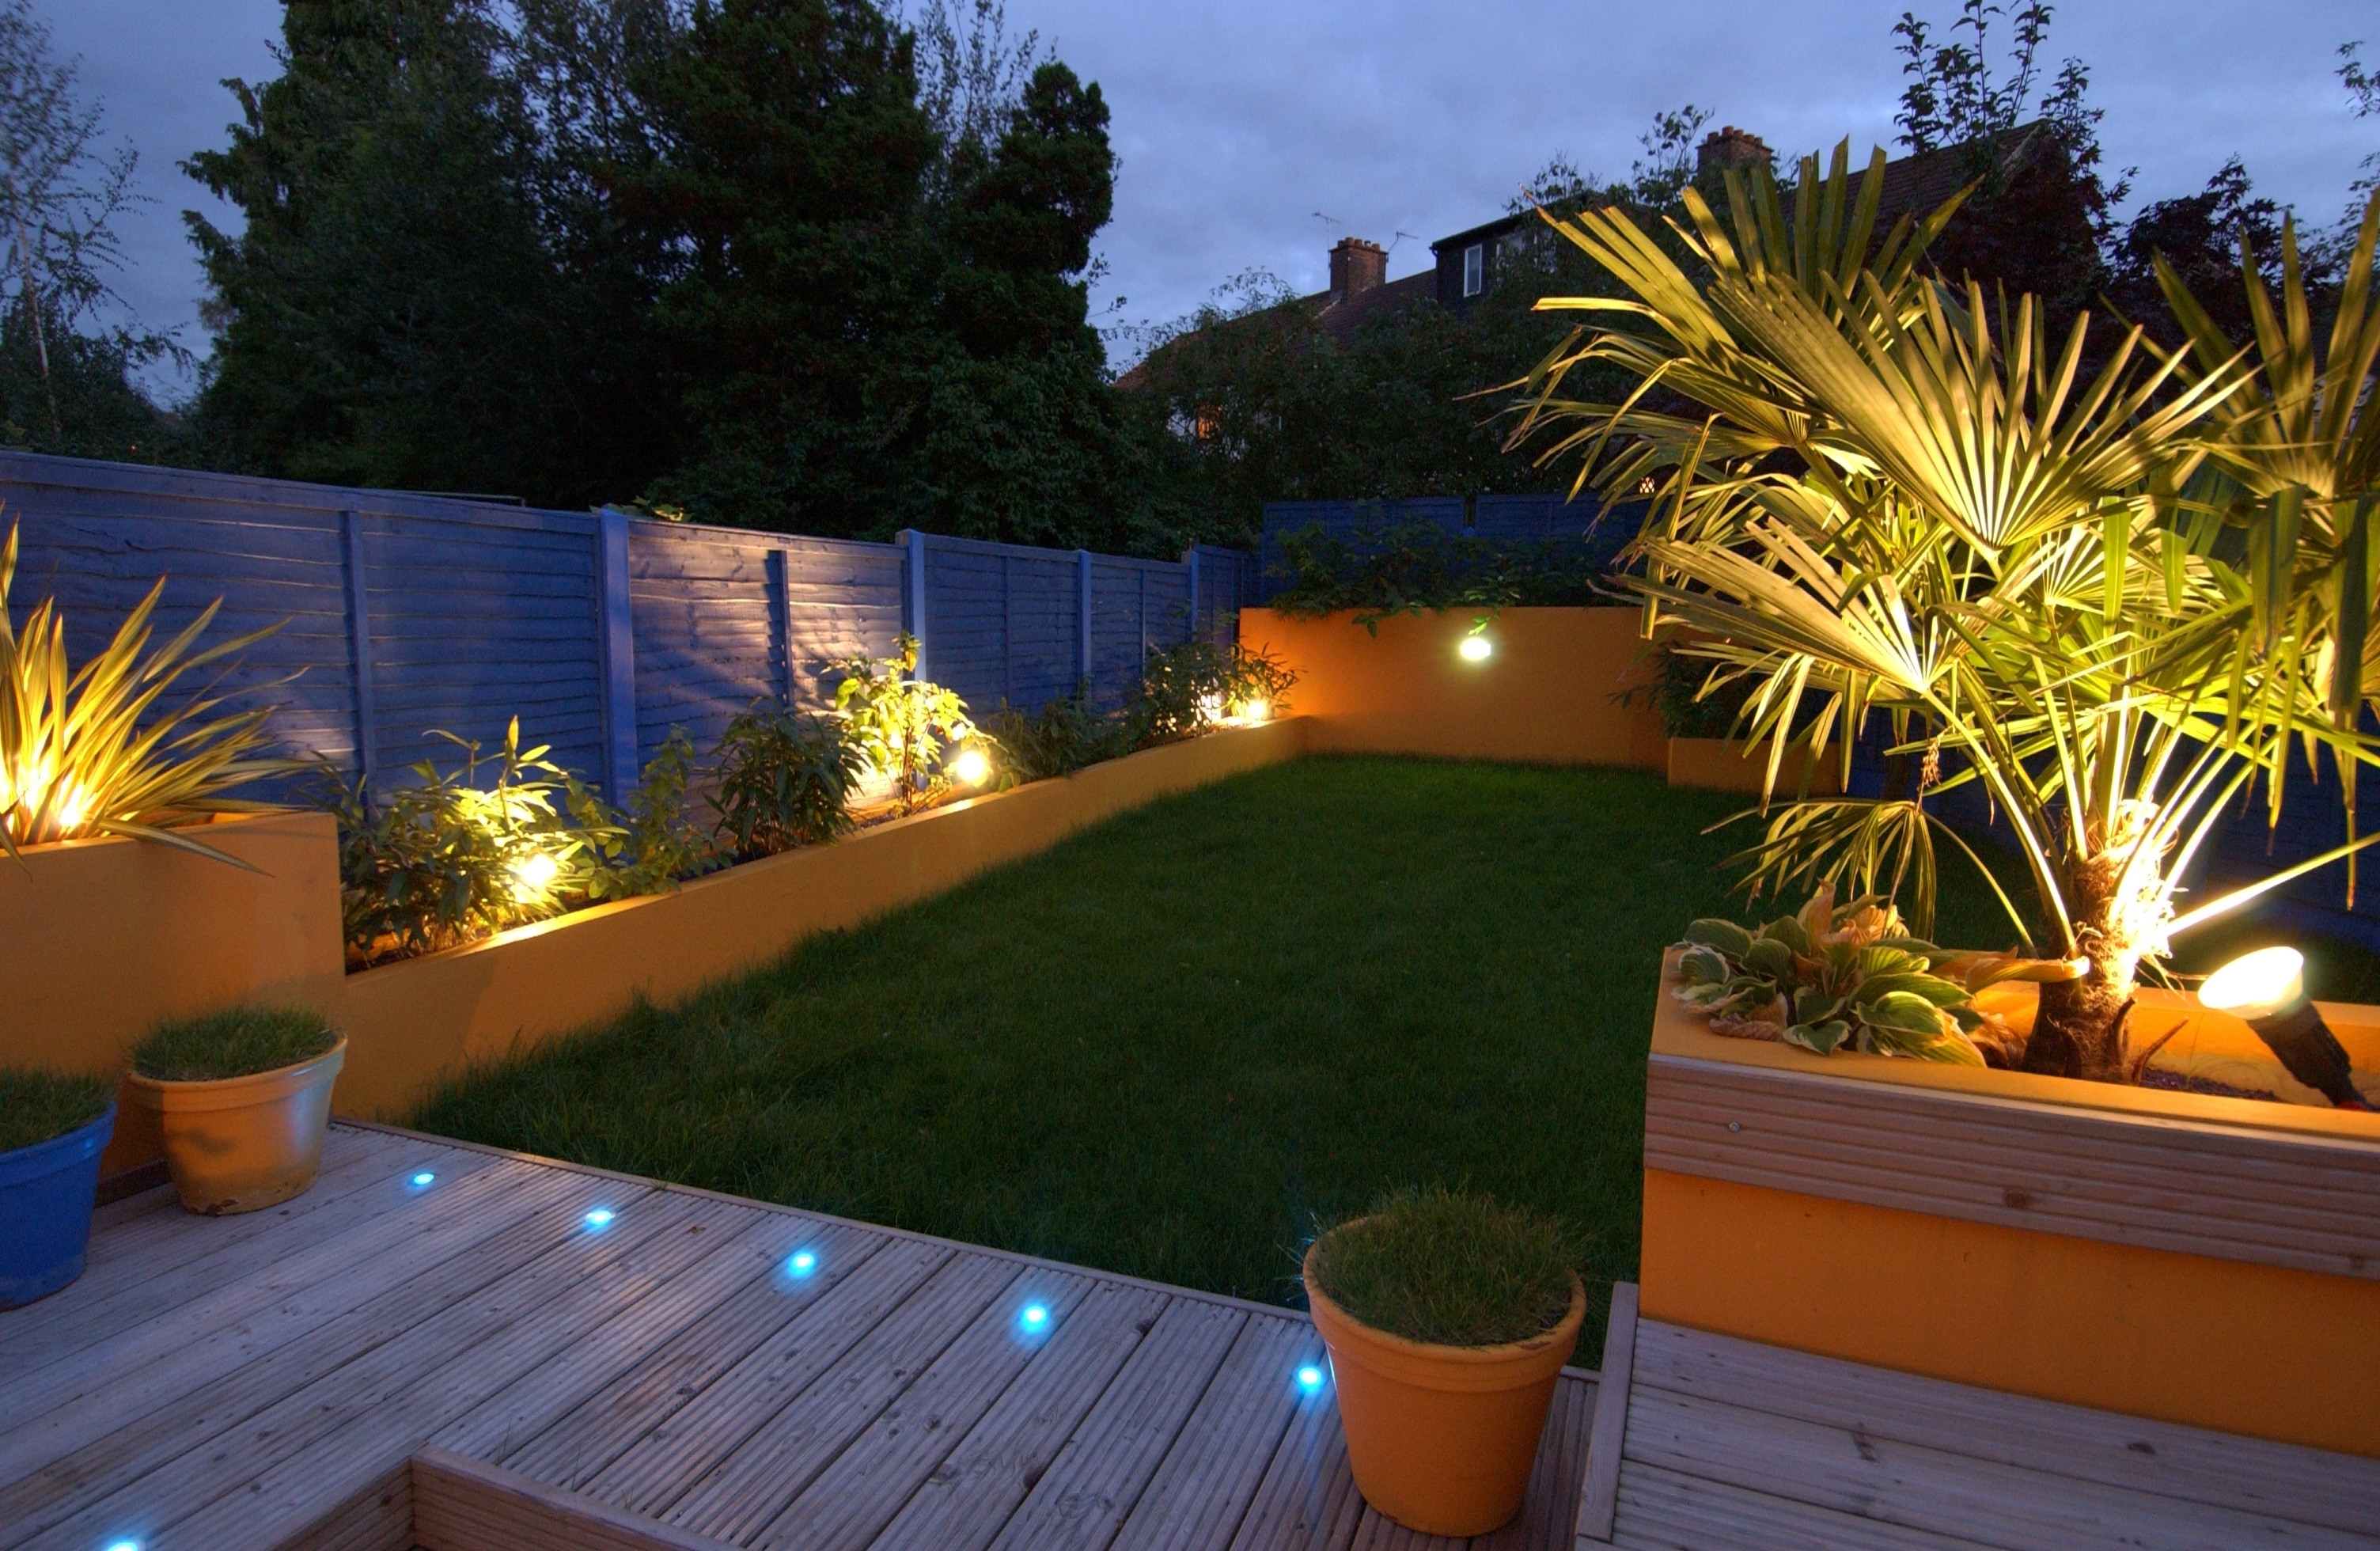 8 Reasons Why Every Home Should Have Outdoor Lighting Juice Within Electric Outdoor Lighting Garden (View 4 of 15)